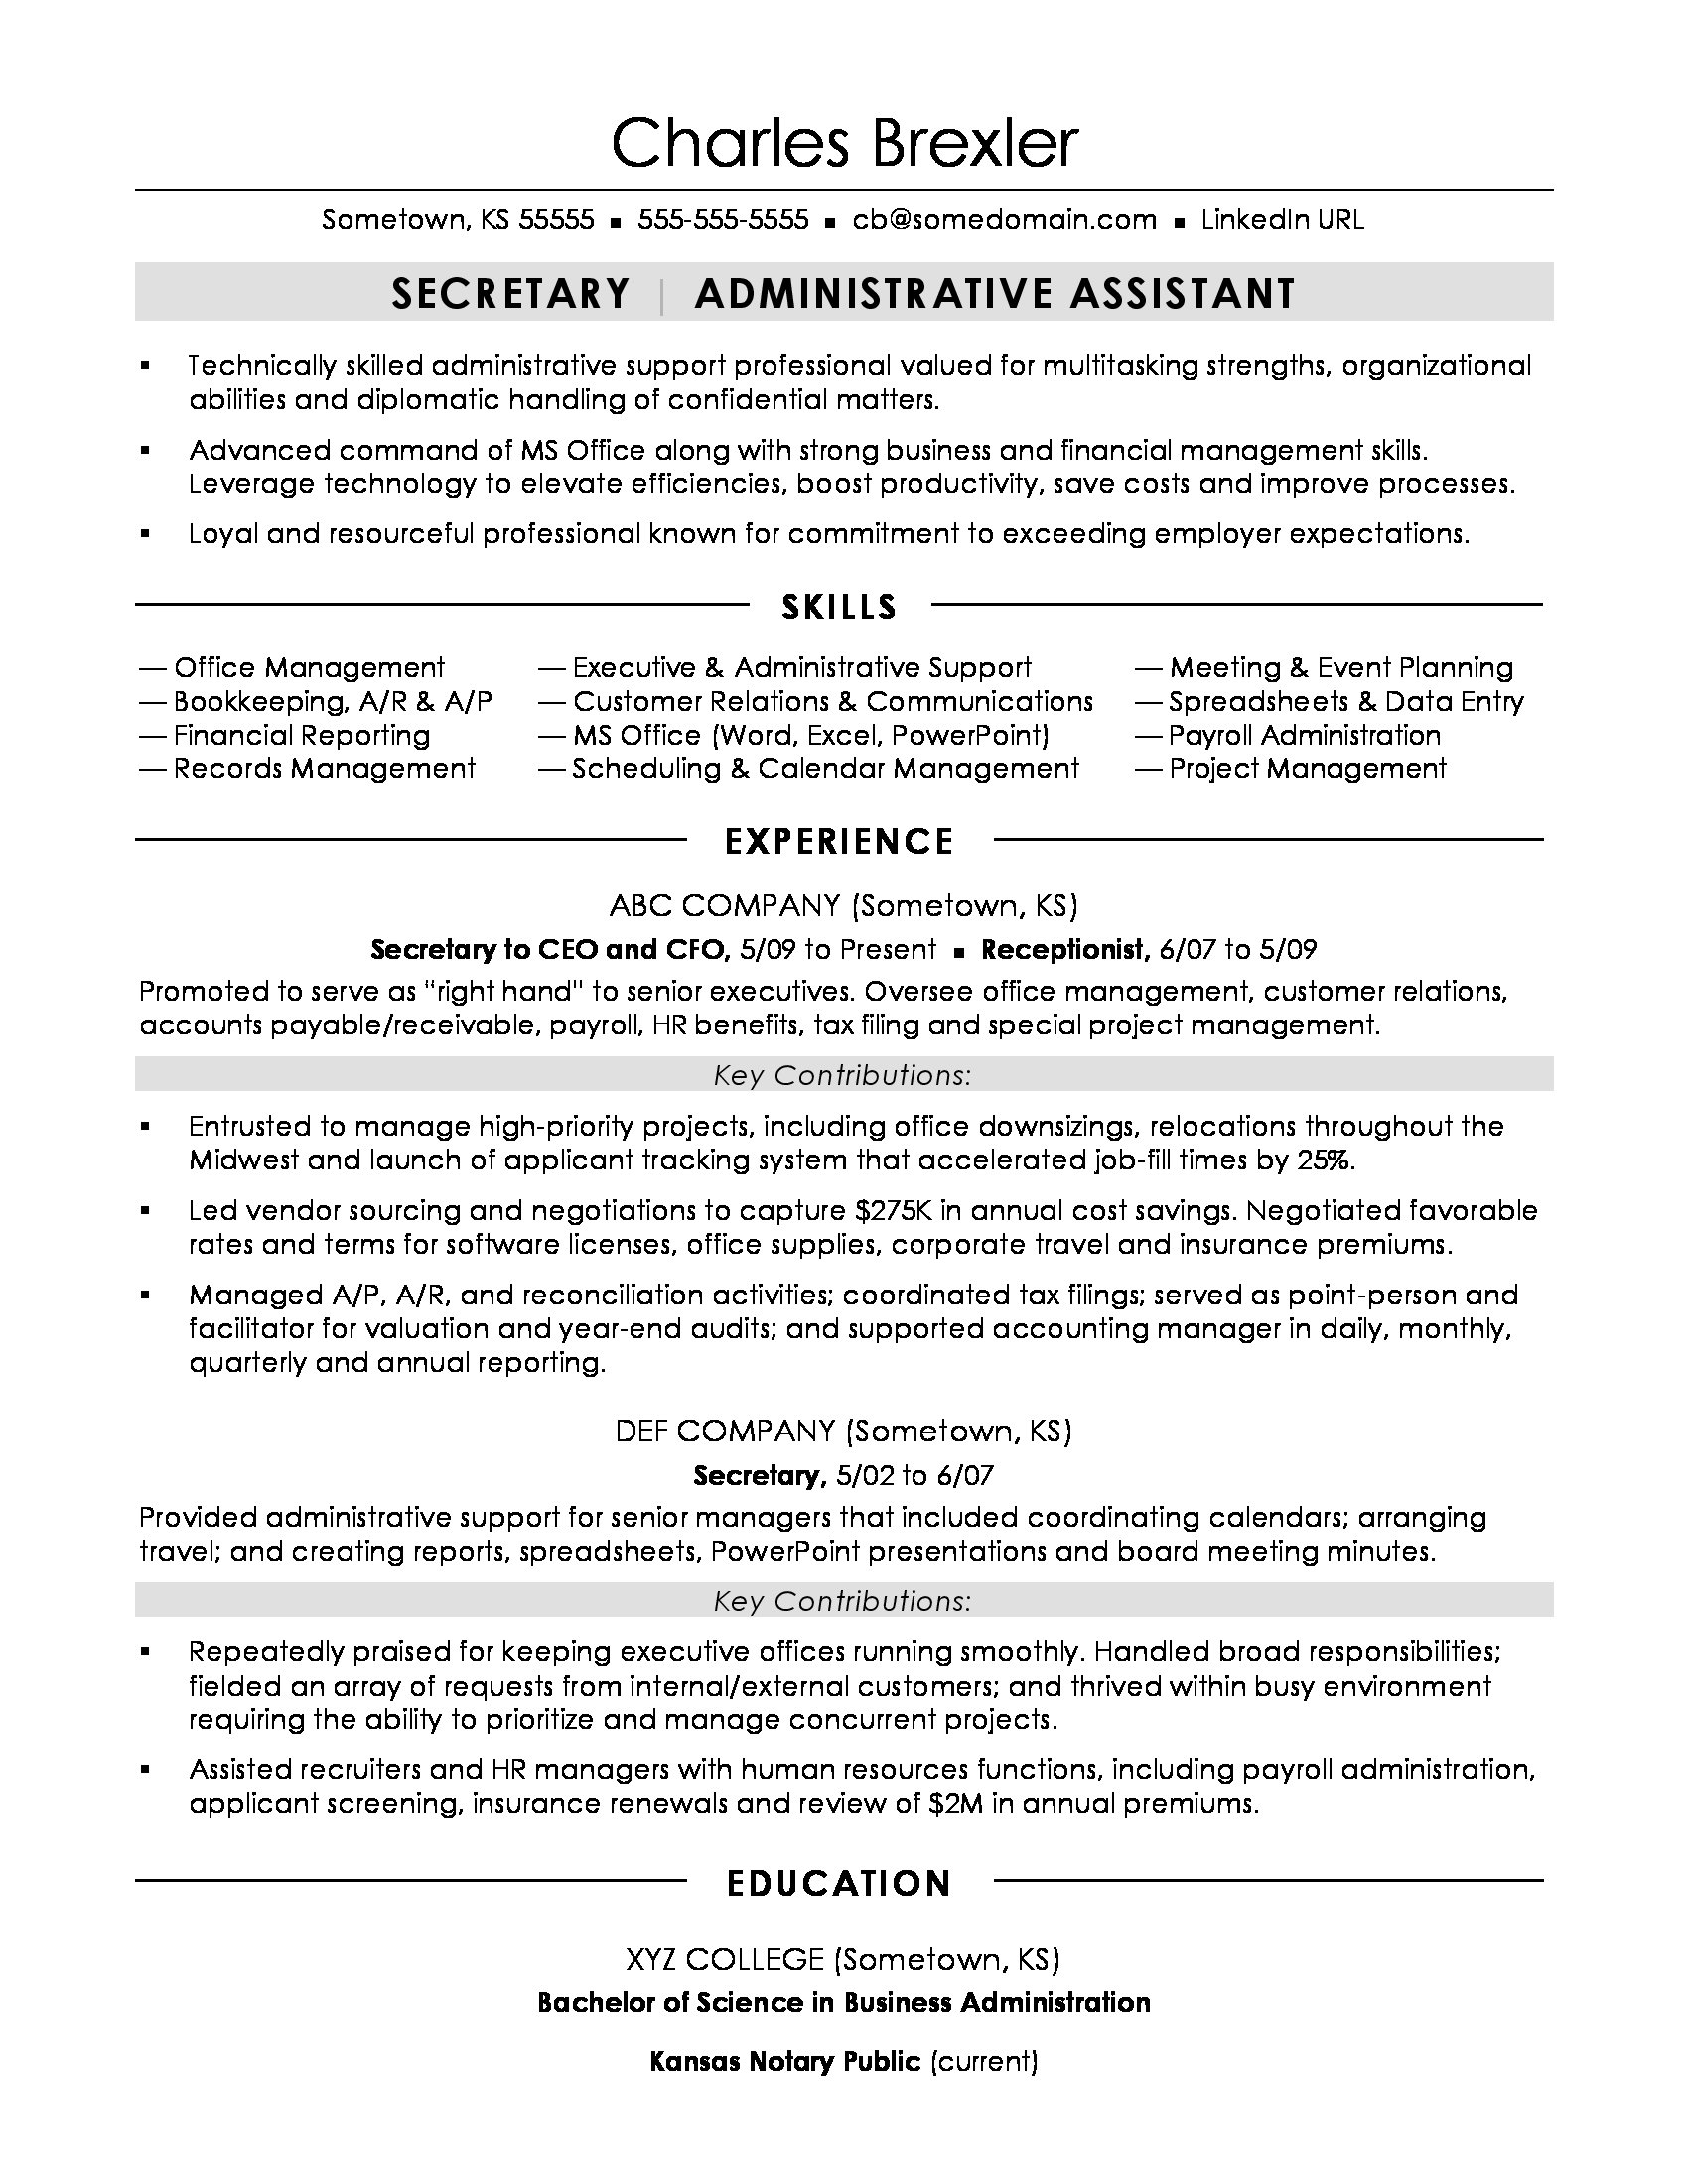 secretary resume sample monster com